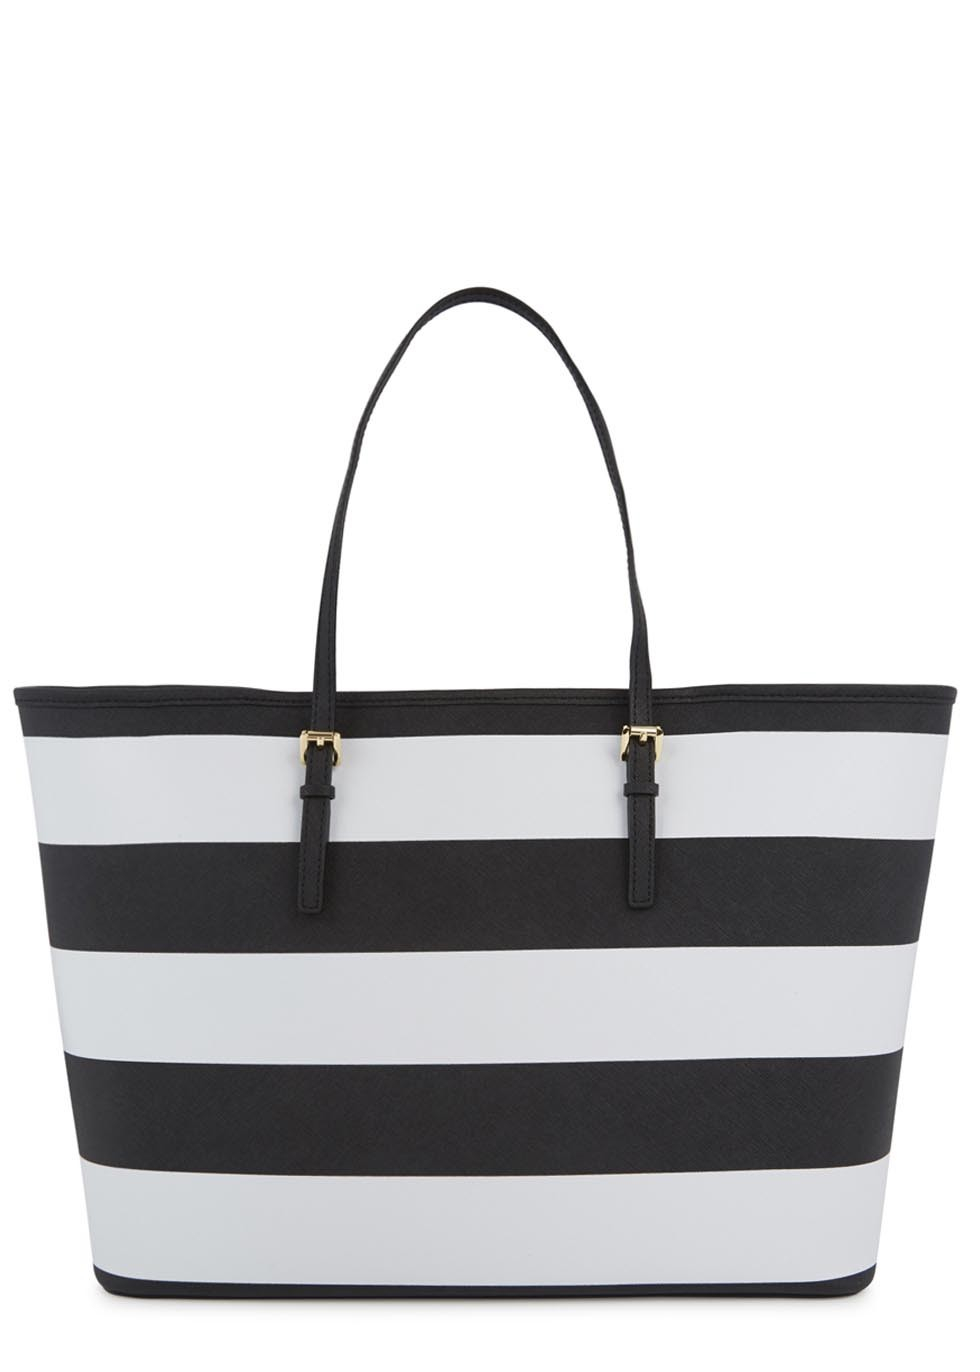 05e712c07 ... new zealand michael kors jet set striped saffiano leather tote in black  lyst 38343 7a5fe